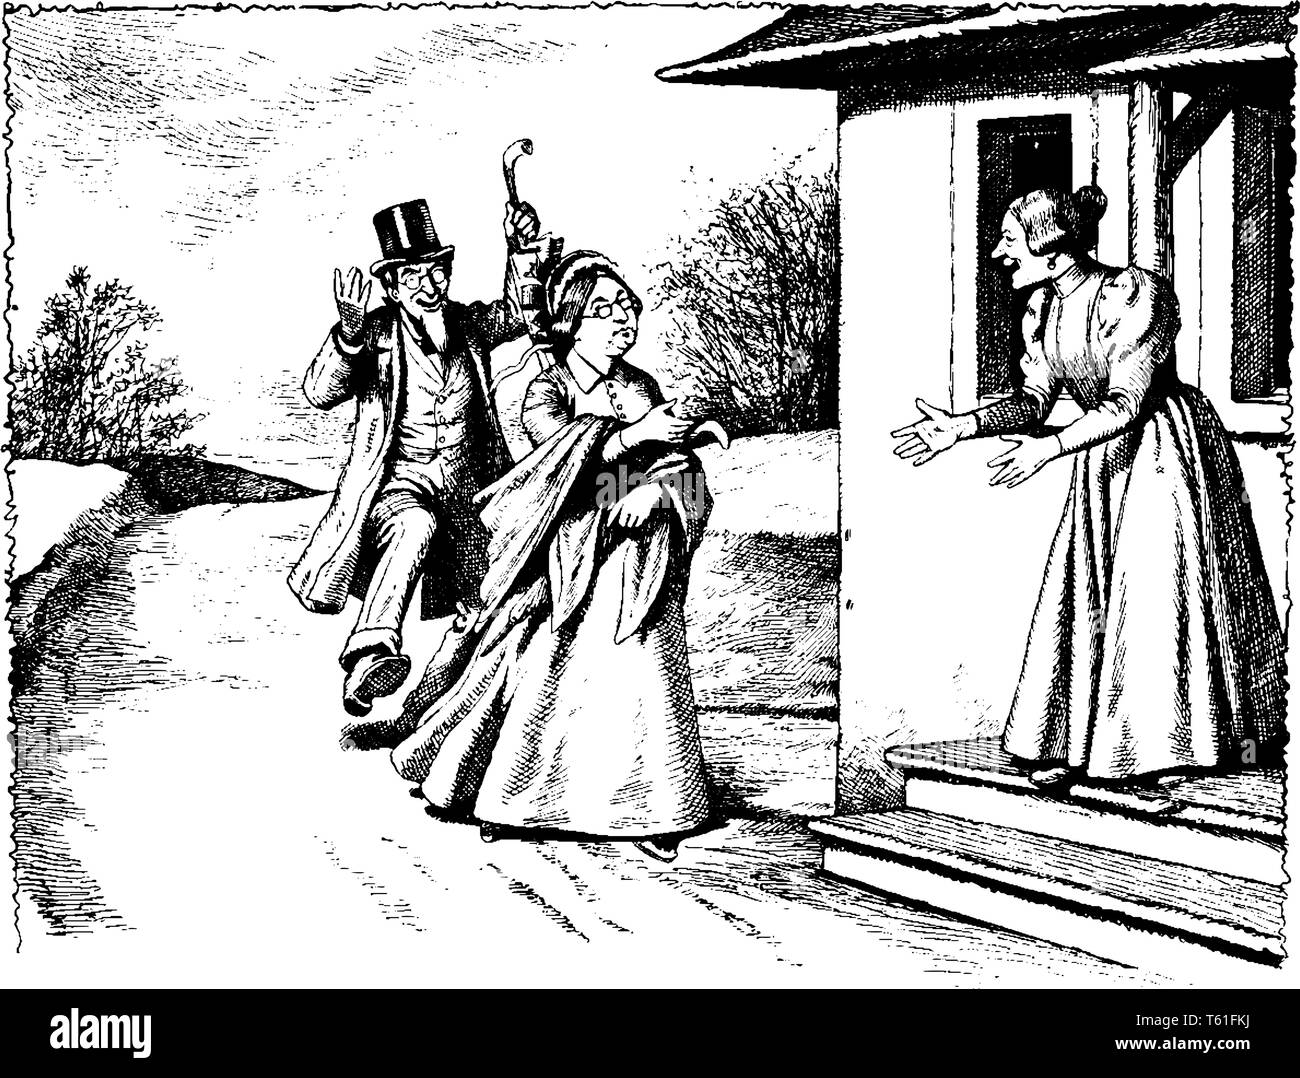 A woman greeting man and another woman at her door, vintage line drawing or engraving illustration - Stock Vector